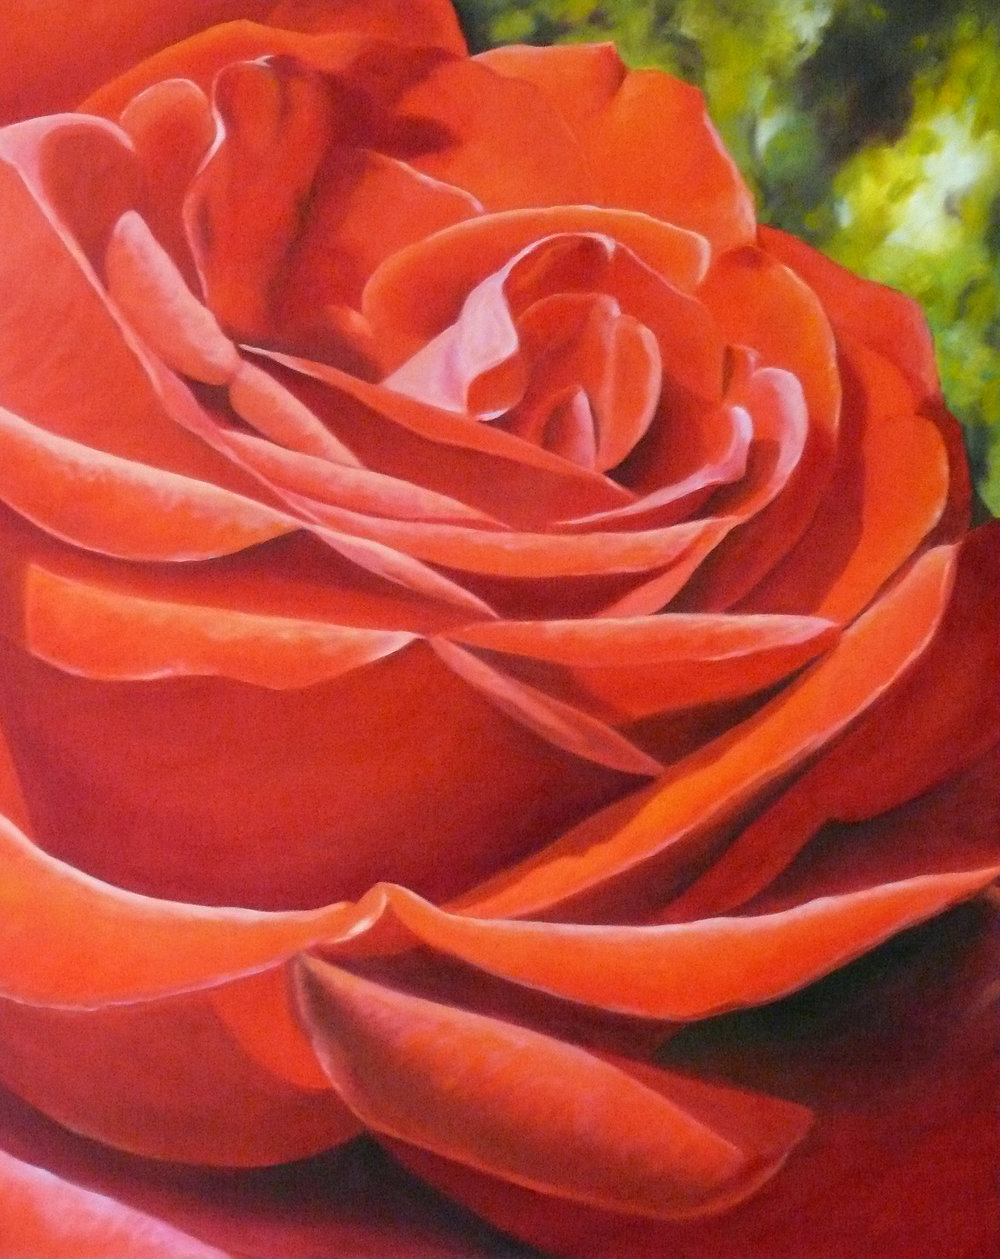 Red Rose by Patty Benson